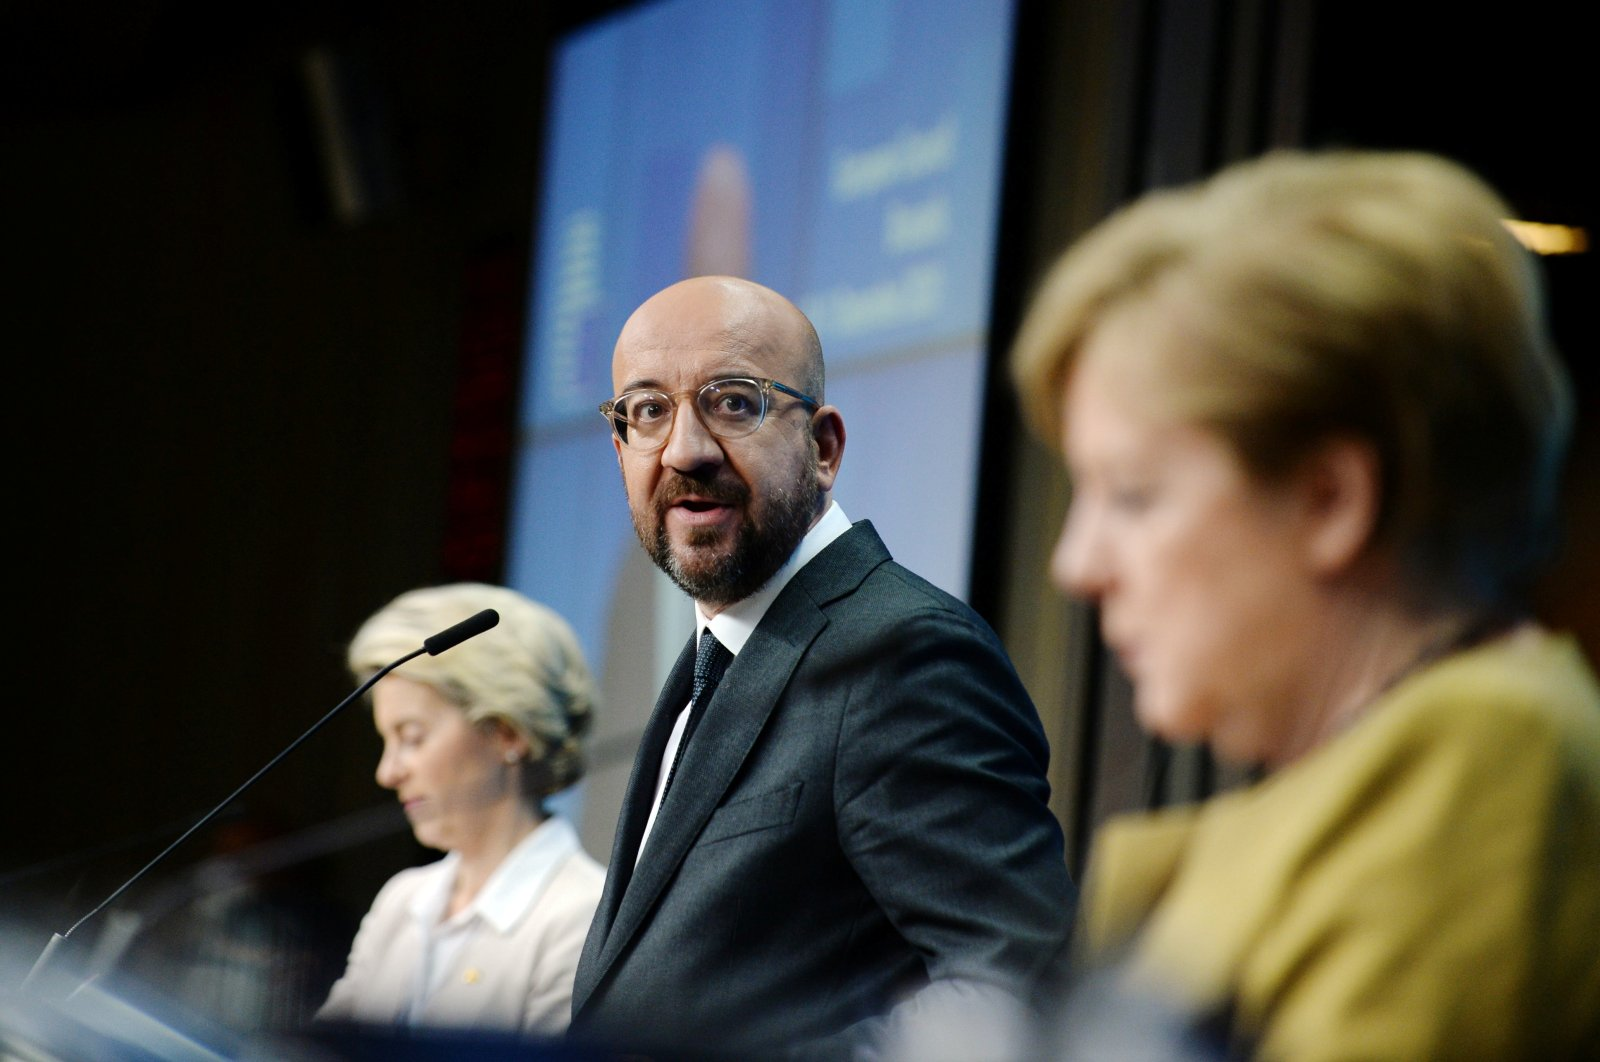 European Commission President Ursula von der Leyen (L), European Council President Charles Michel (C) and German Chancellor Angela Merkel (R) hold a news conference at the end of a EU leaders summit in Brussels, Belgium, Dec. 11, 2020.  (REUTERS Photo)